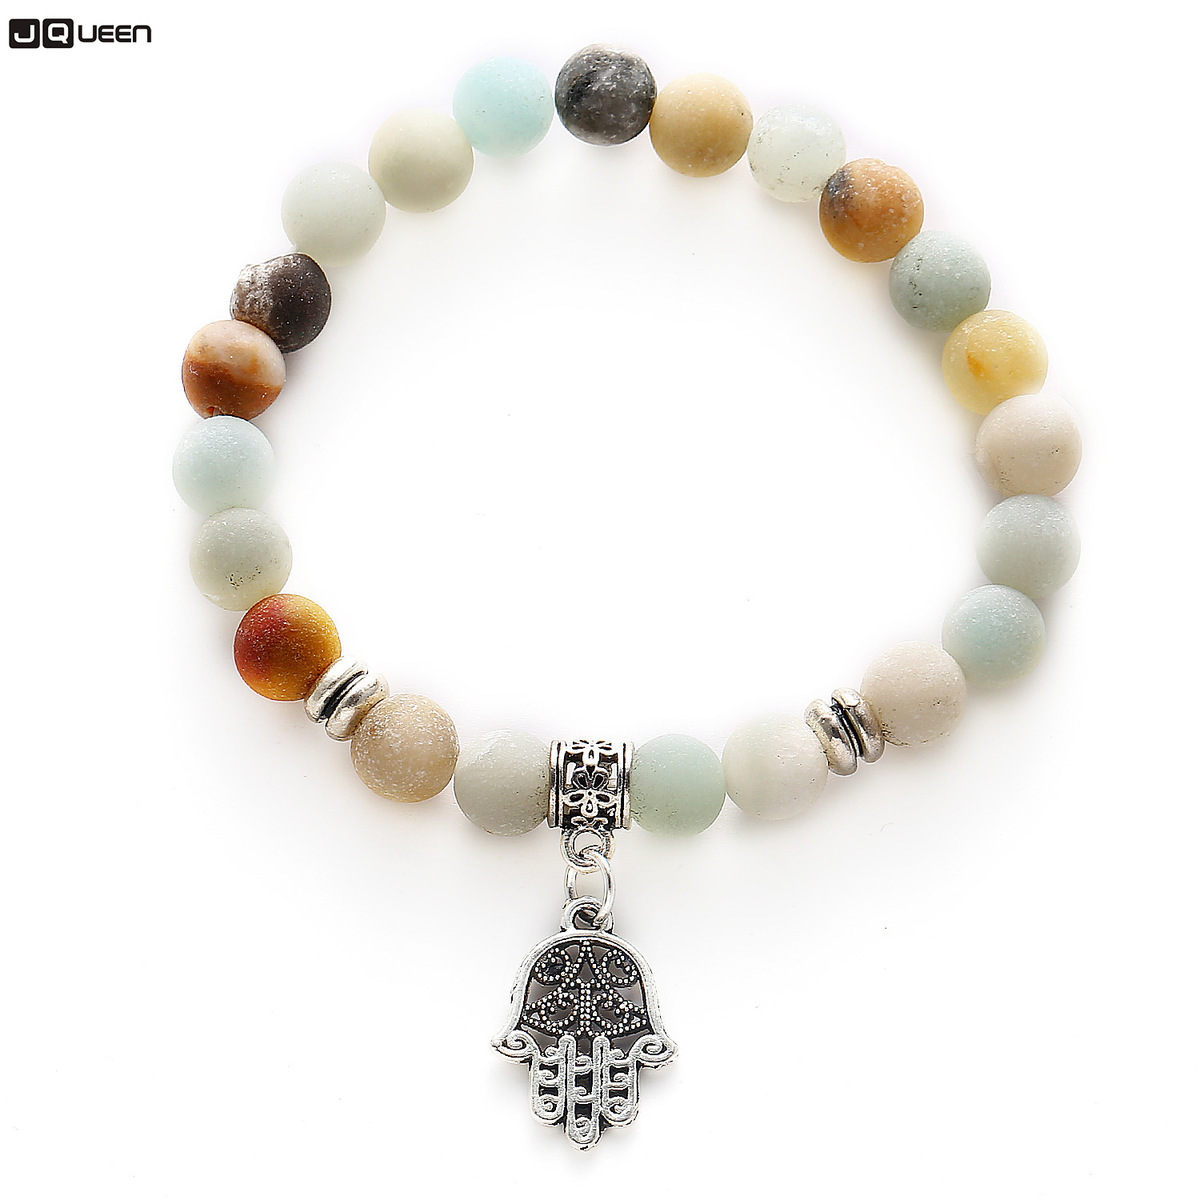 New Colorful Natural Stone Beads Bracelets & Bangles Jewellery Palm Charm Bracelets For Women